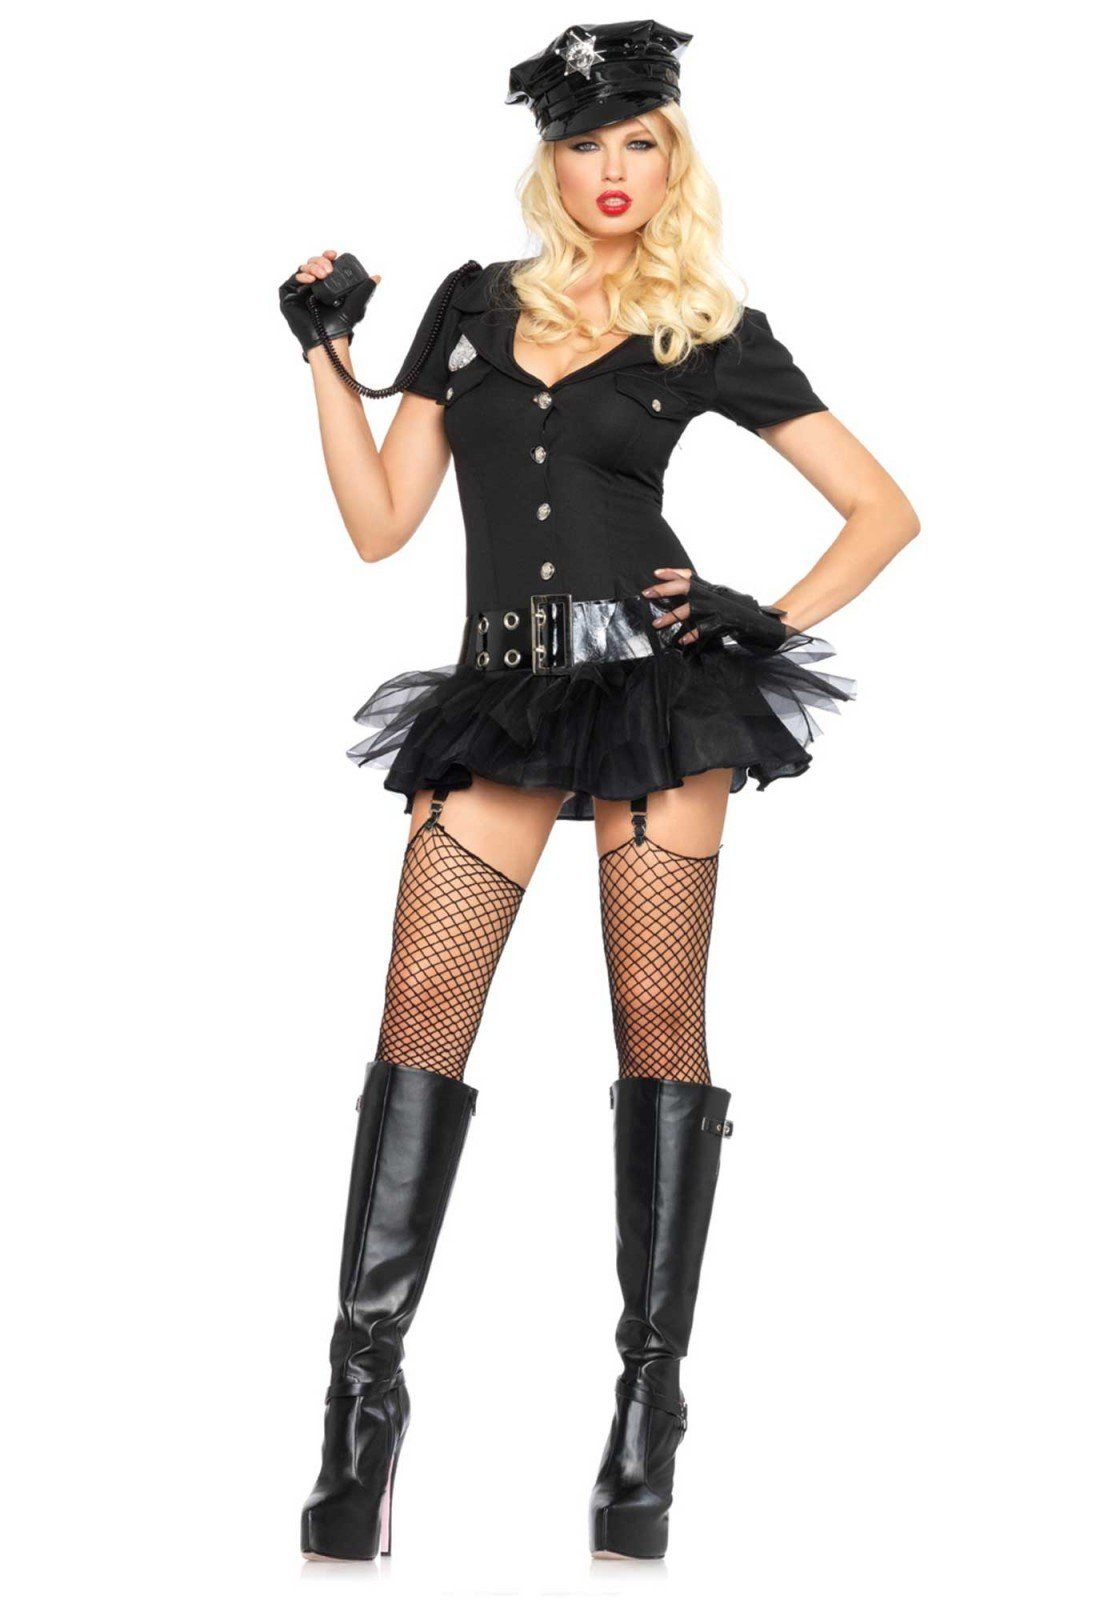 LEG AVENUE POLICE SHIRT WOMEN HALLOWEEN COSTUME LARGE